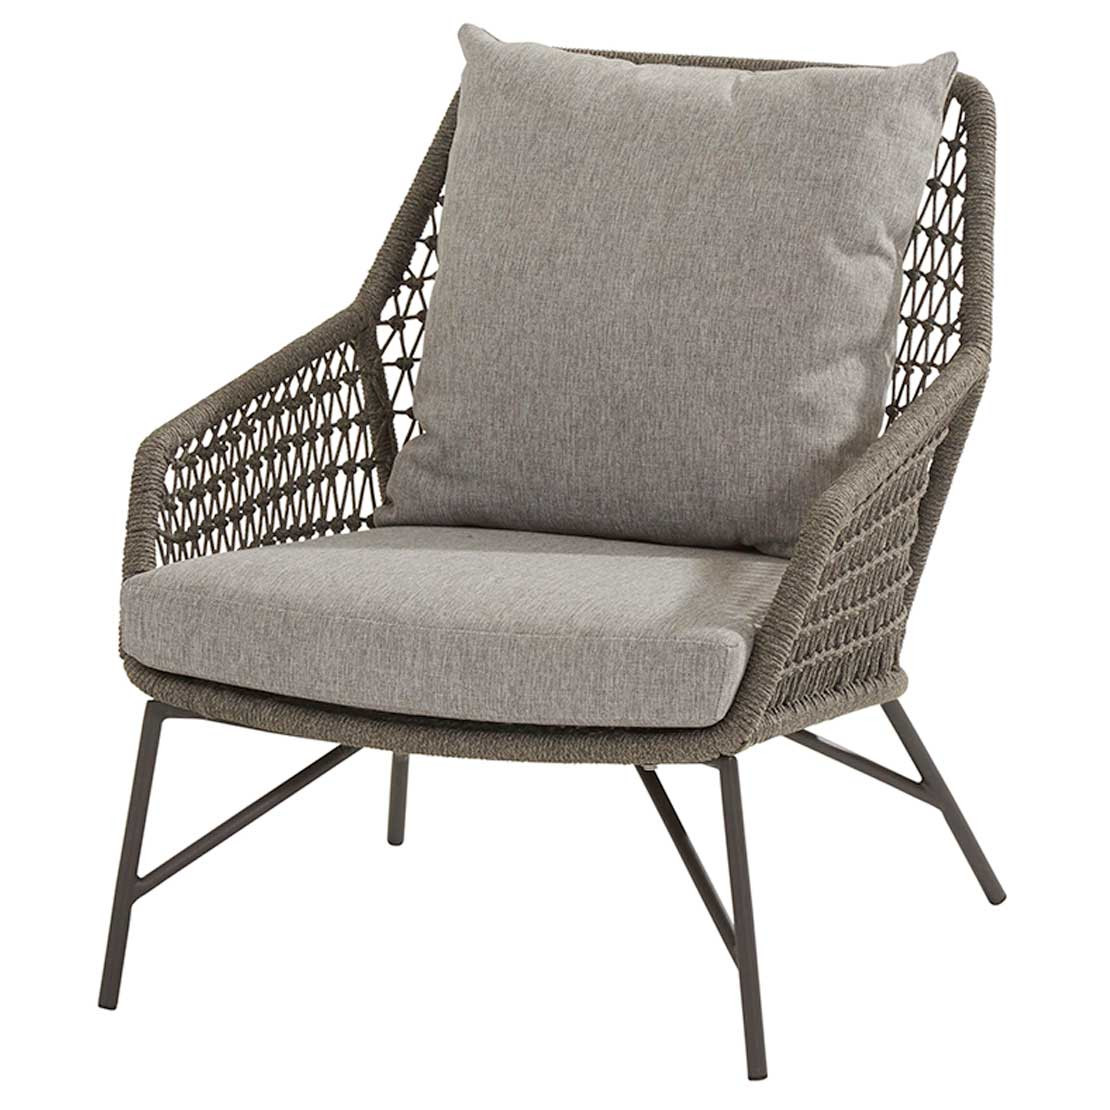 Babilonia living chair mid grey knotted with 2 cushions